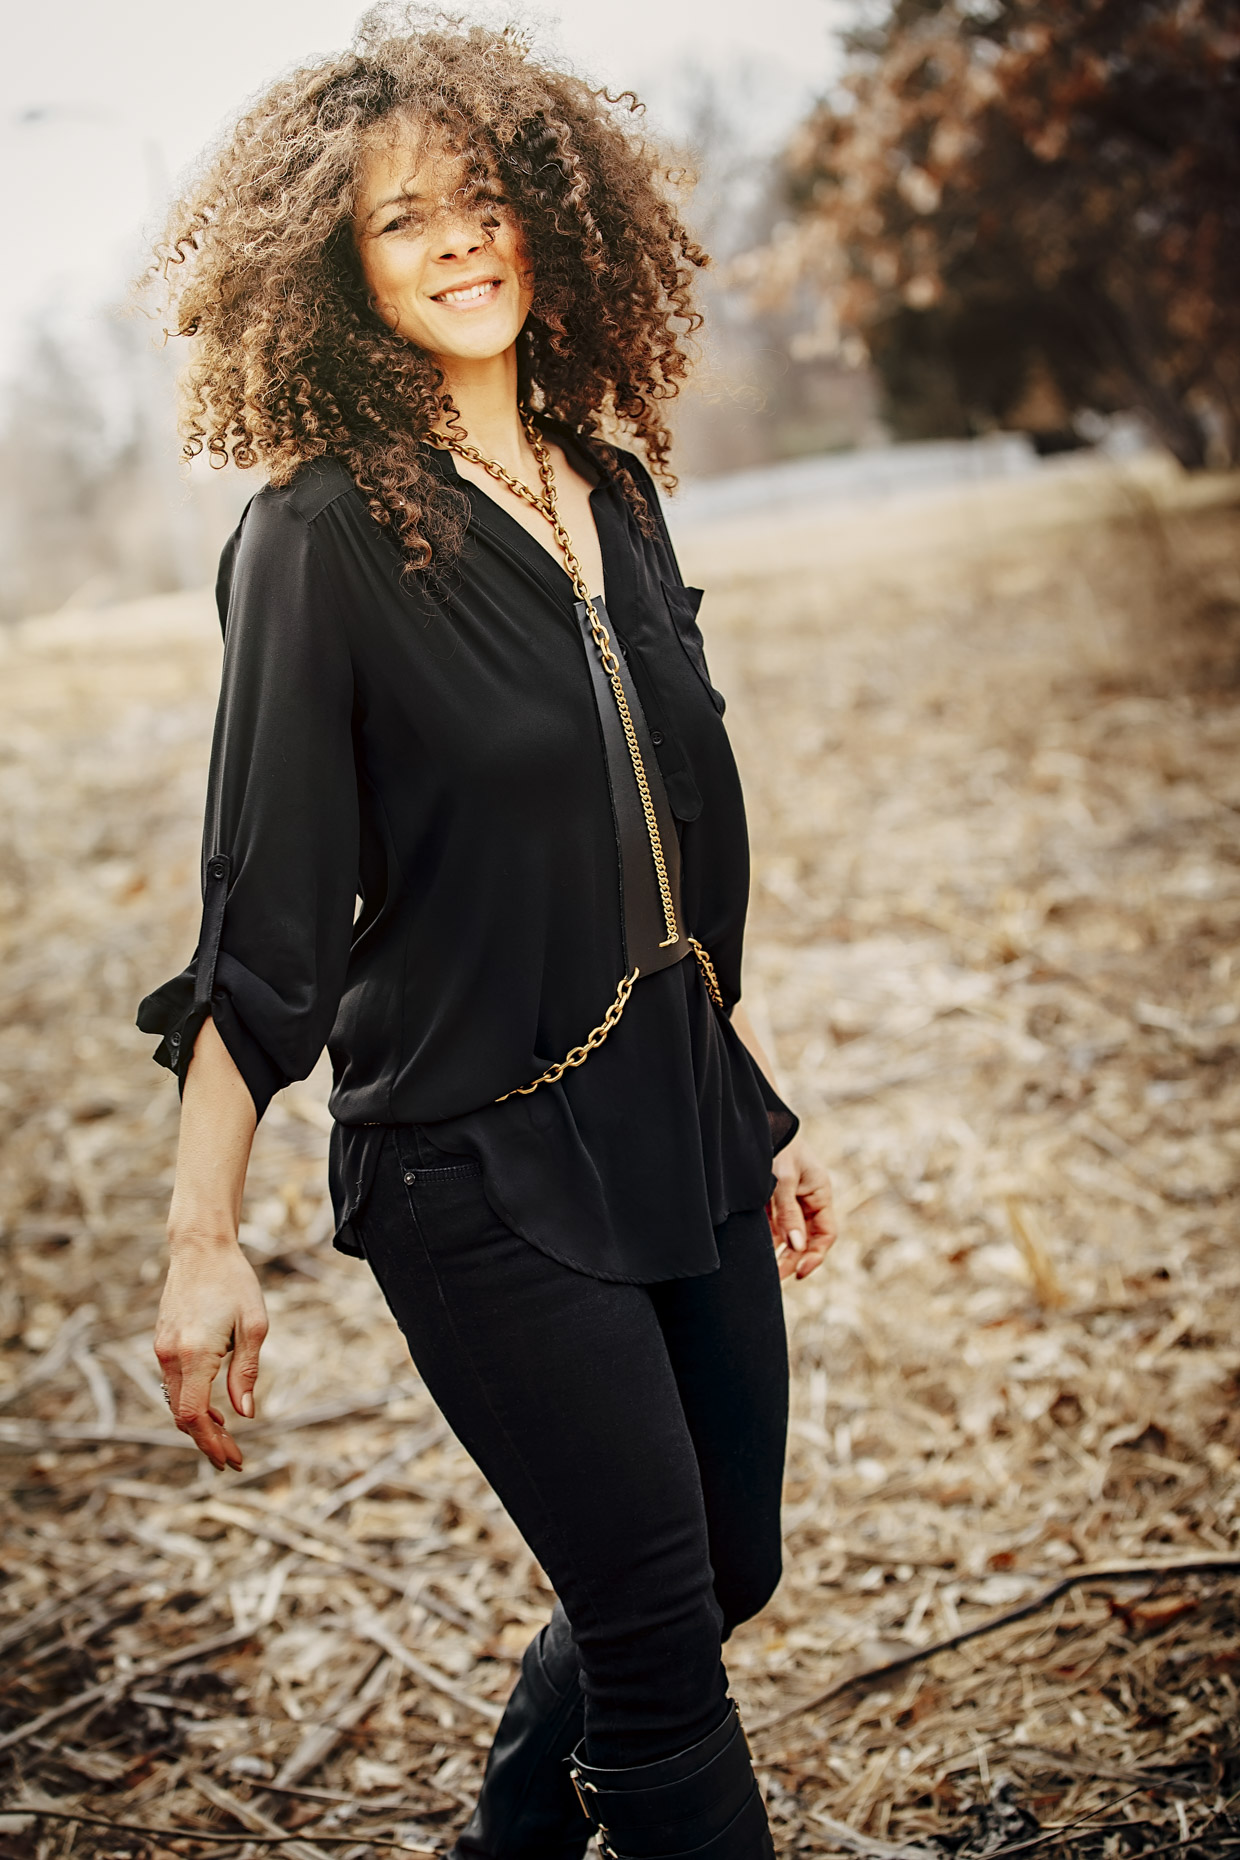 Curly haired woman in all black with Belthazzar Jewels brass and leather harness